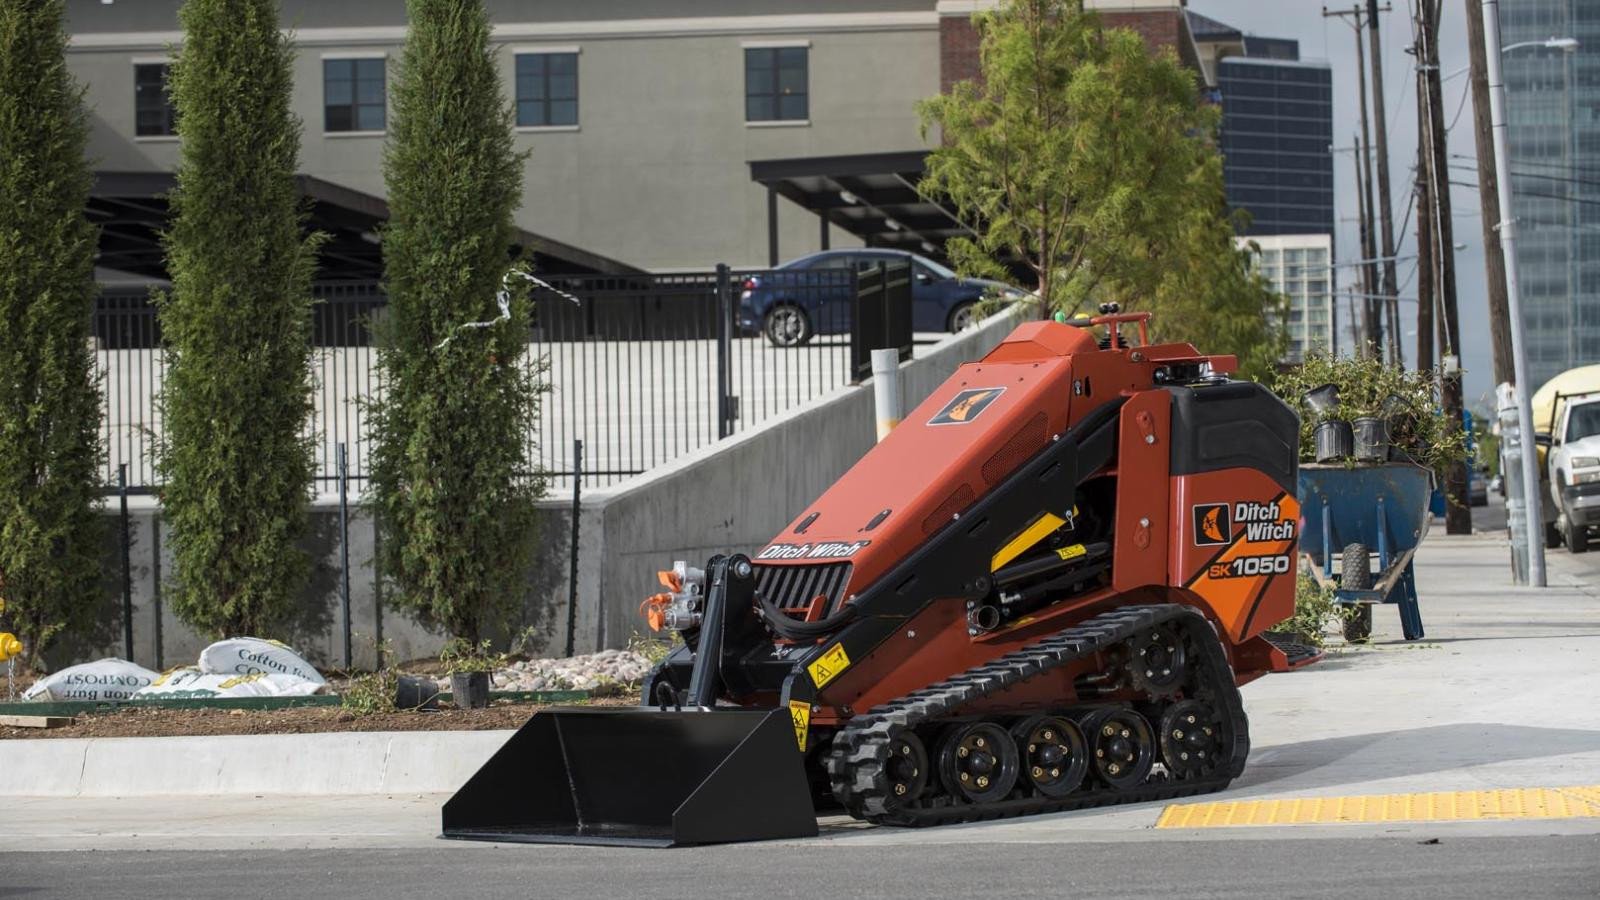 Ditch Witch SK1050 MINI SKID STEER